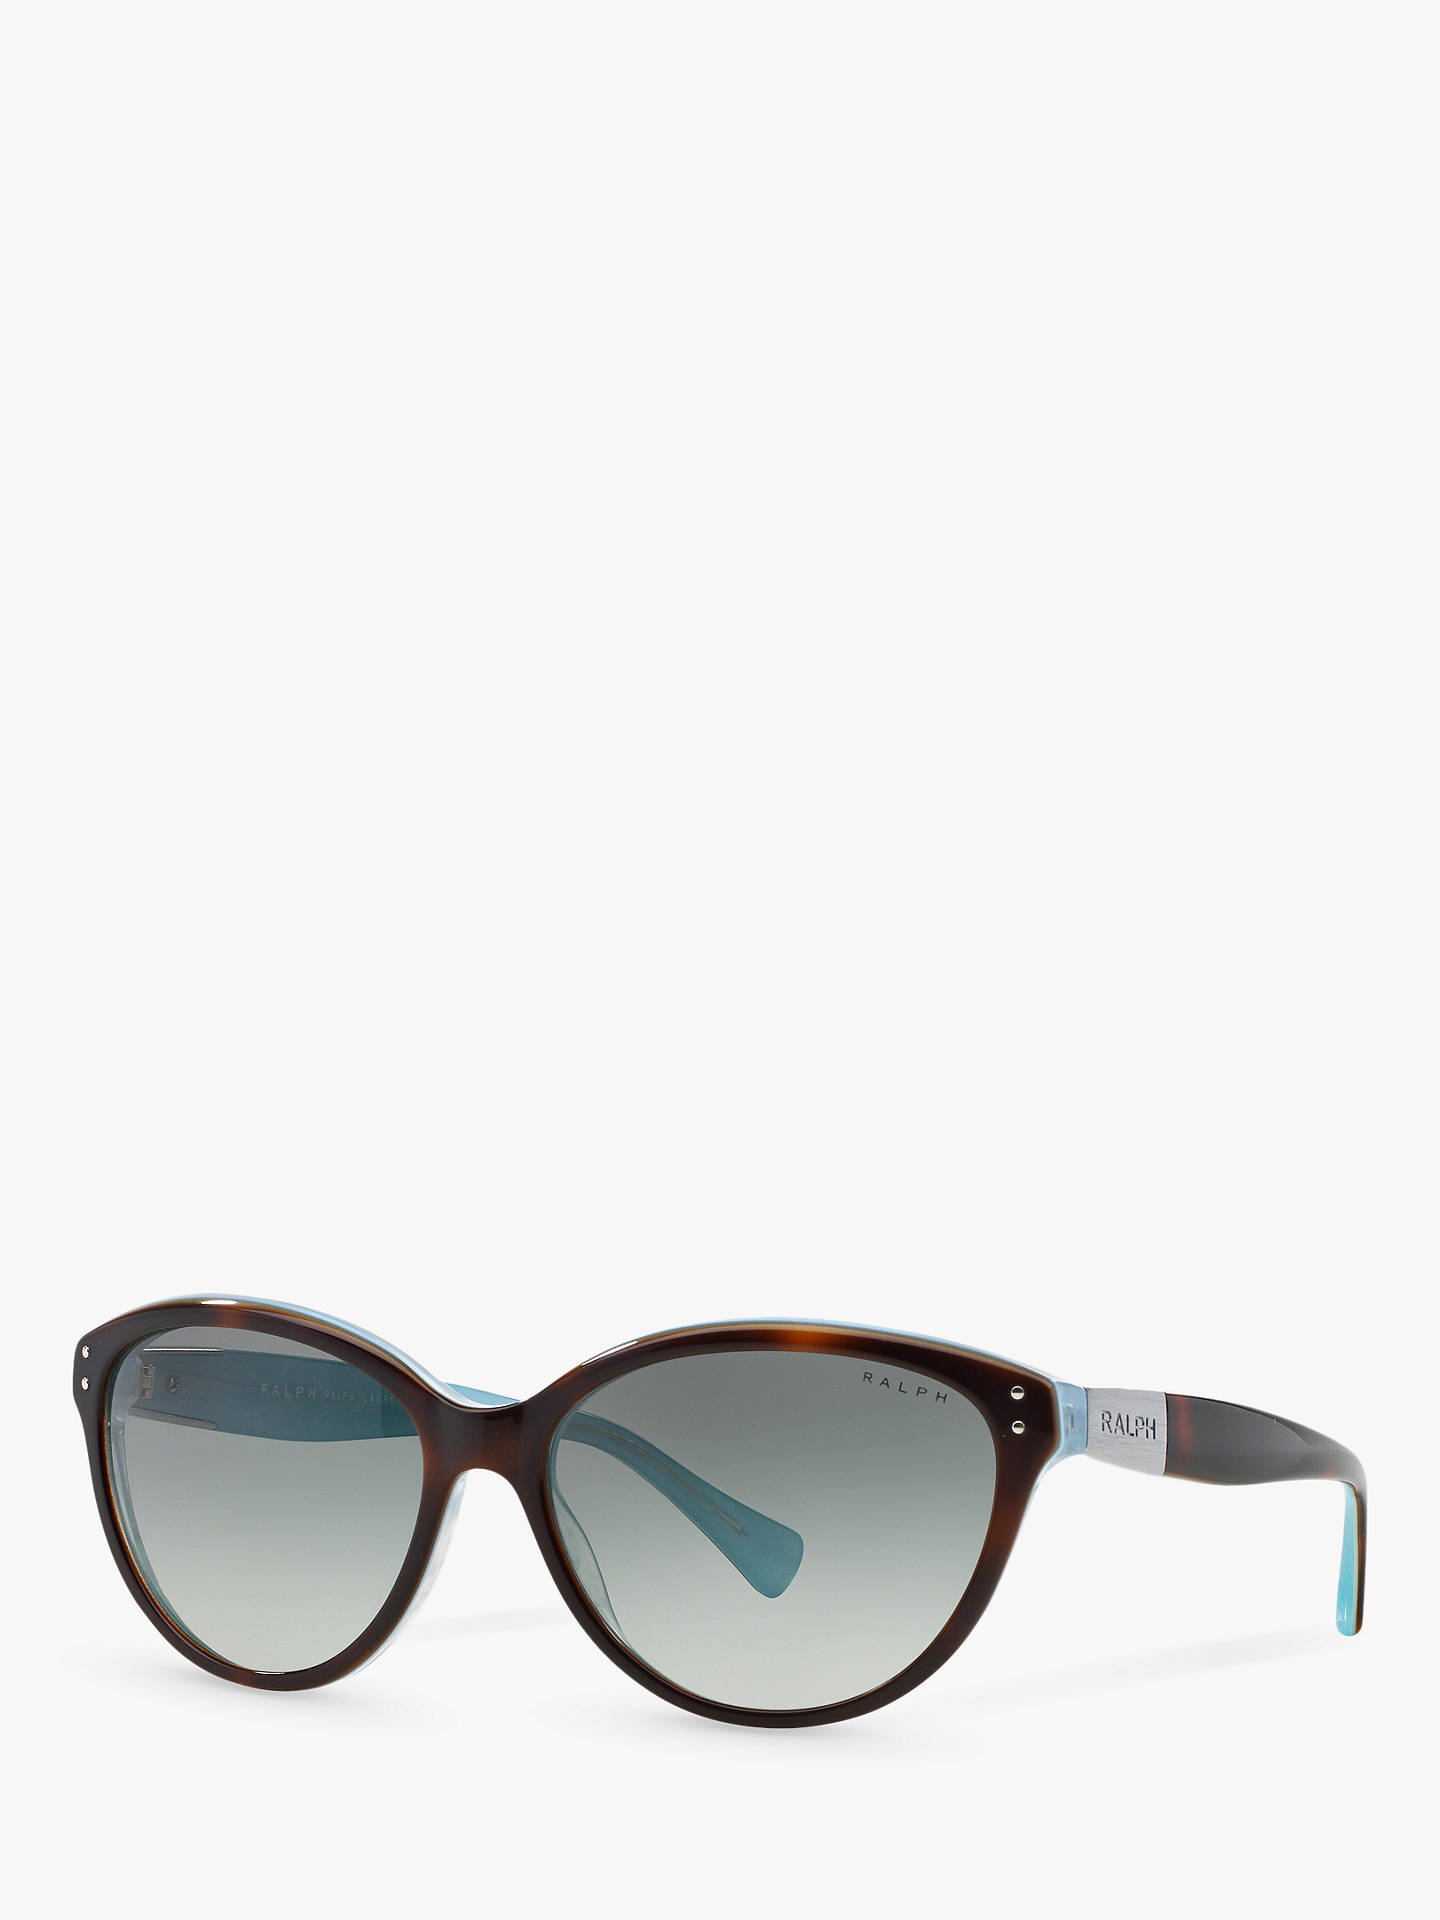 f5c151b8d558 Buy Polo Ralph Lauren RA5168 Women's Cat's Eye Sunglasses,  Tortoise/Turquoise Online at johnlewis ...